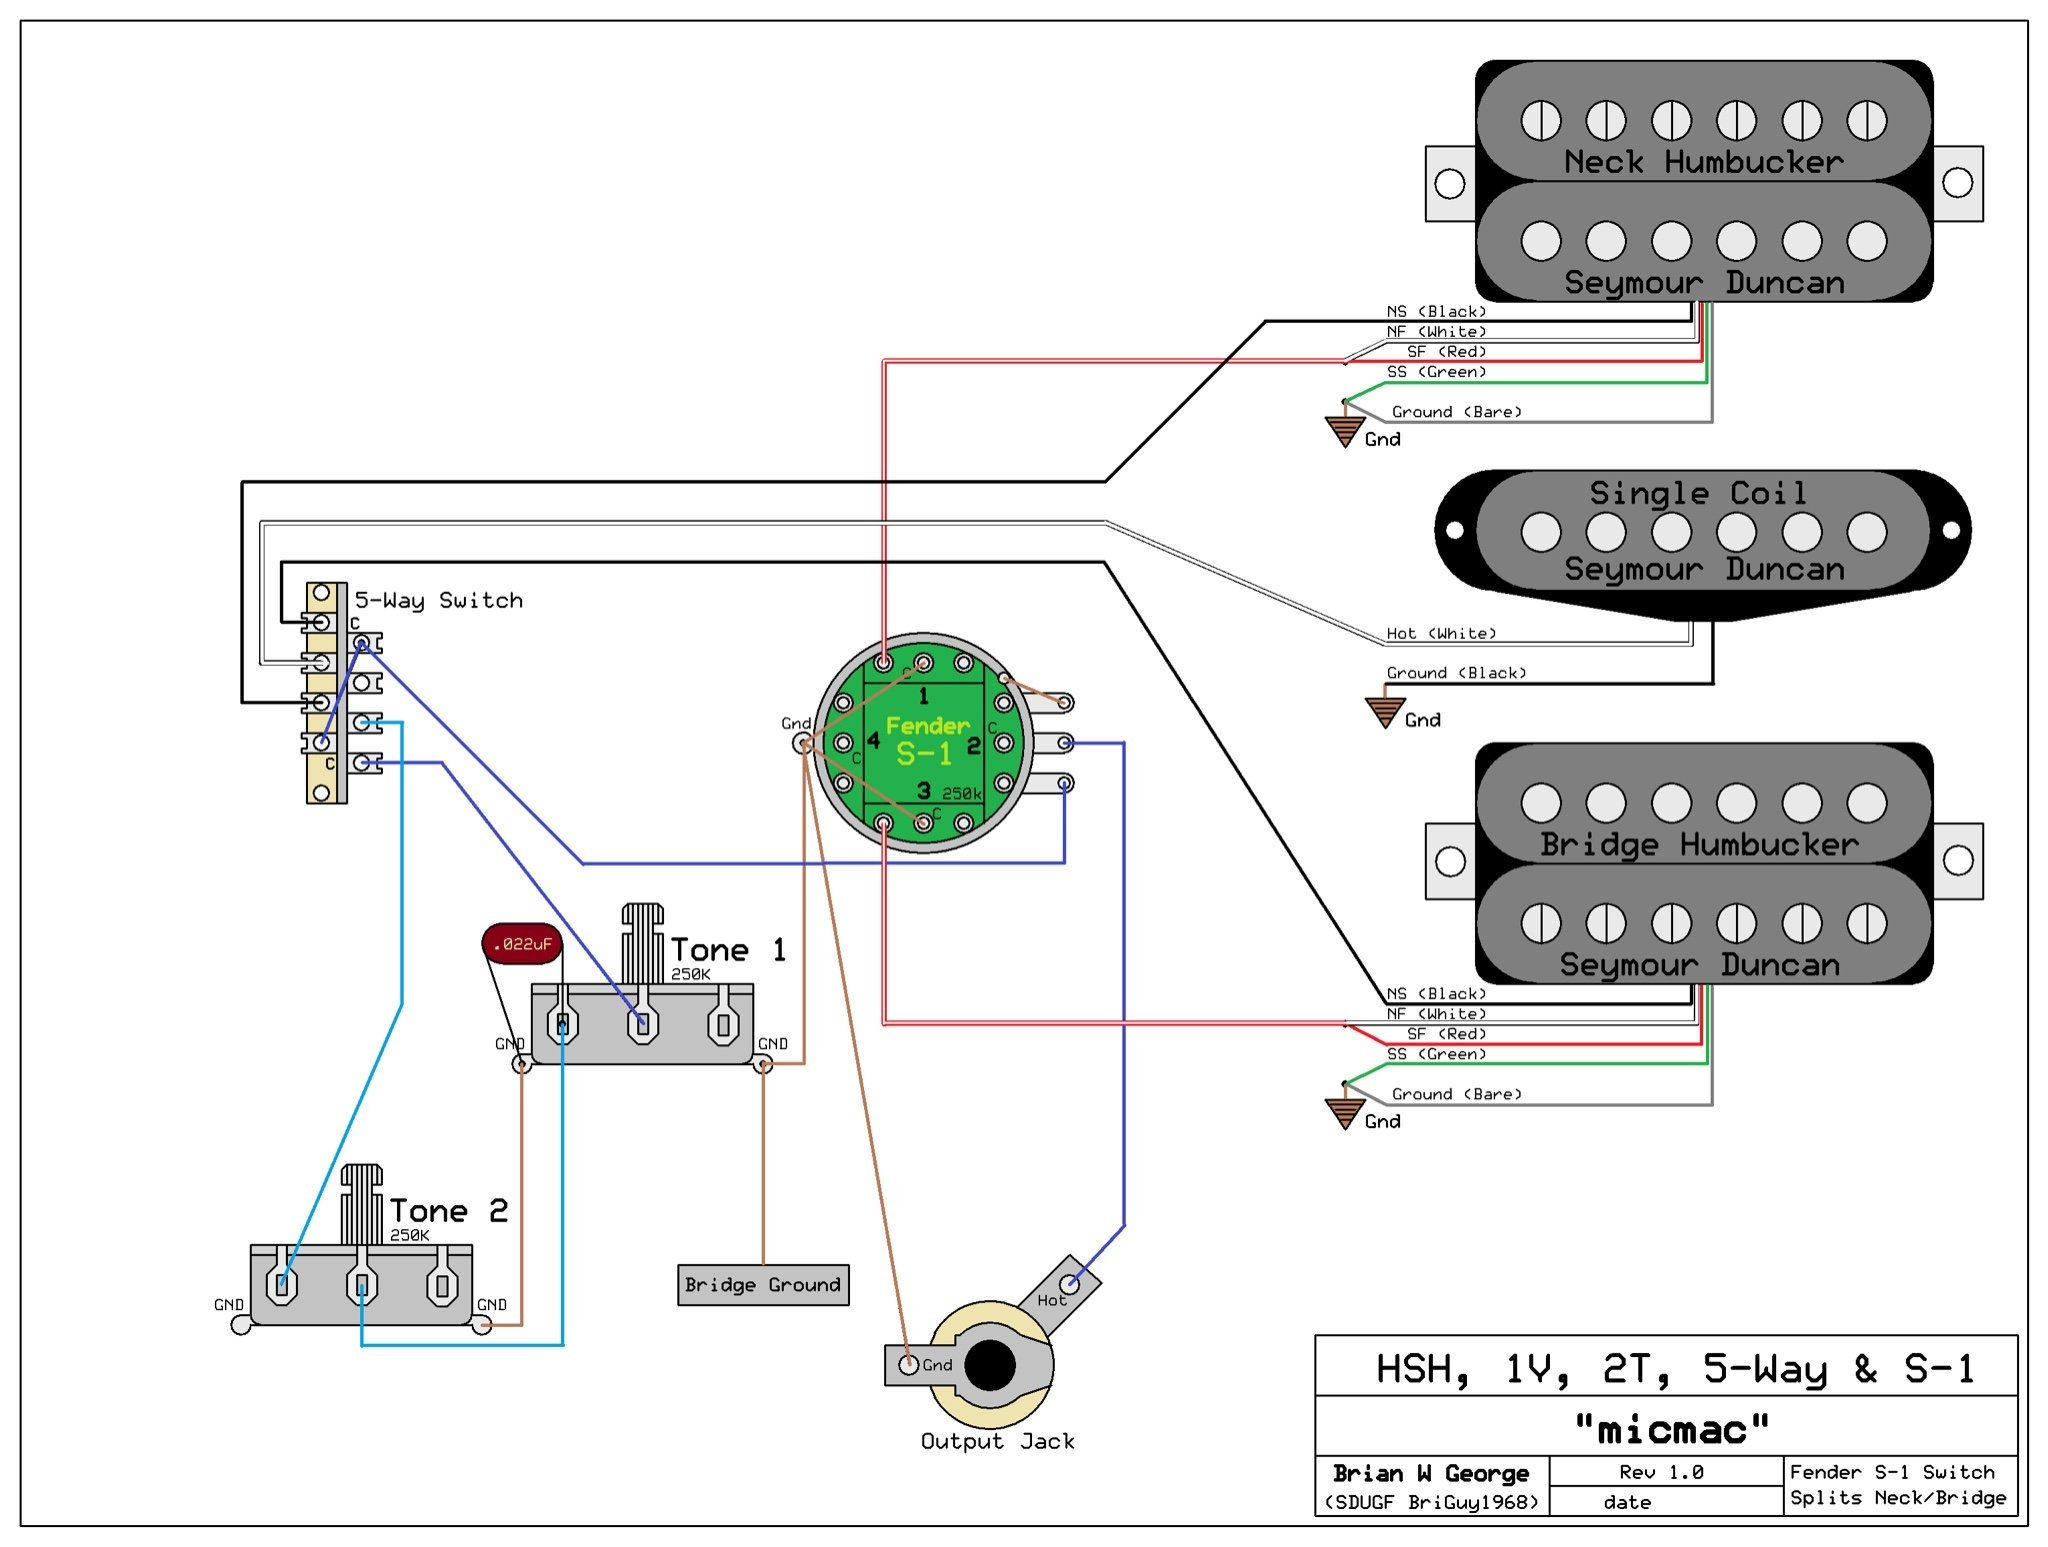 [SCHEMATICS_4US]  Guitar Wiring Diagrams Explained - 2012 Chevy Equinox Backup Camera Wiring  Diagram for Wiring Diagram Schematics | Brian May Guitar Wiring Diagram |  | Wiring Diagram Schematics